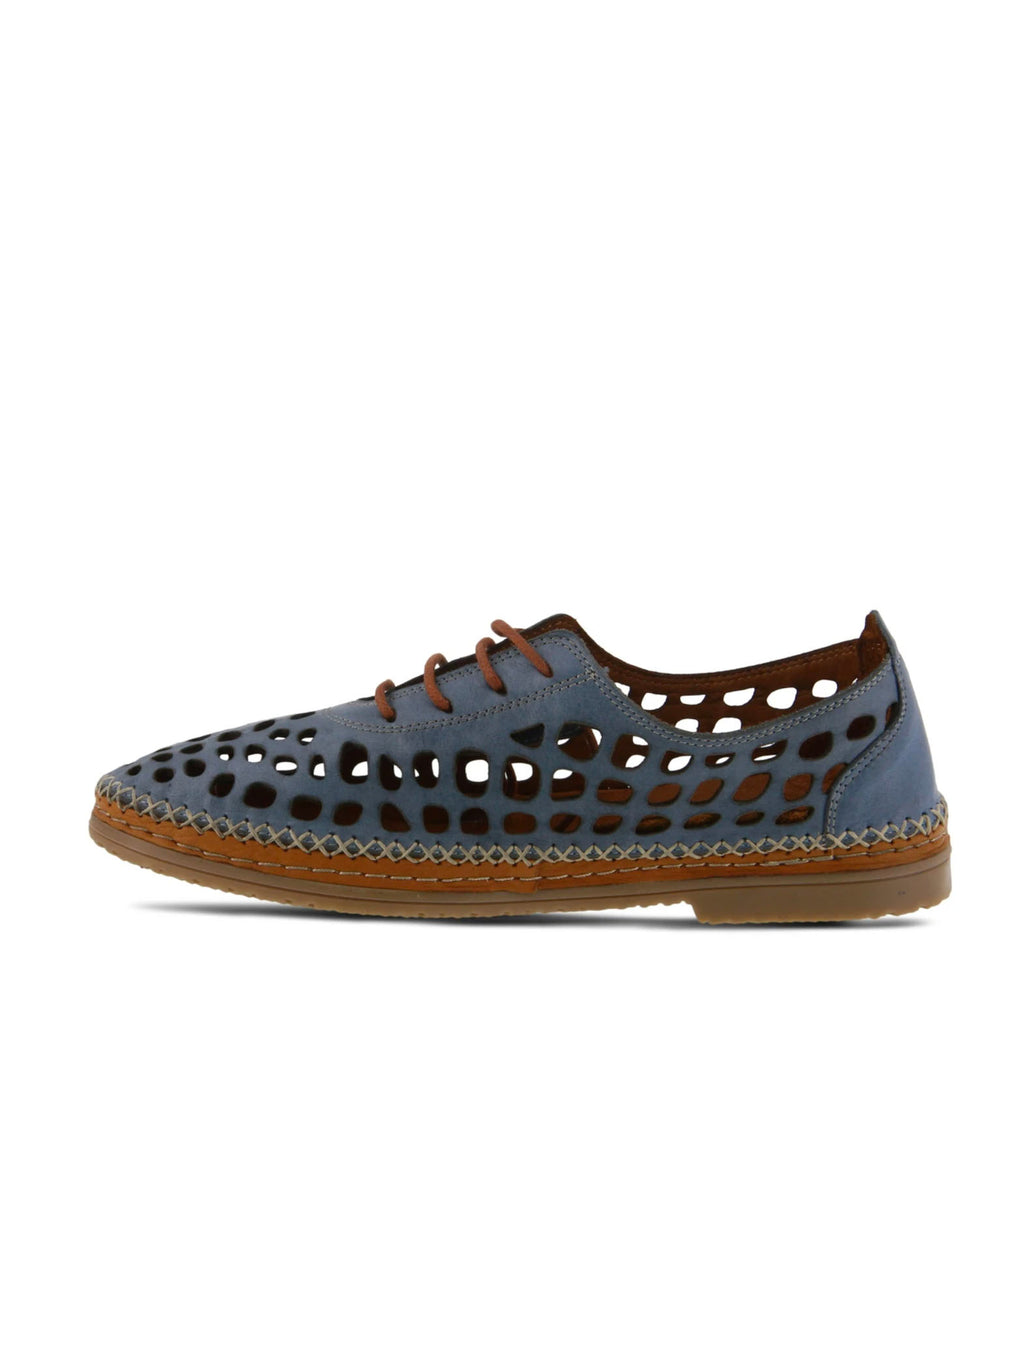 Spring Step Bernetta Loafer in Blue